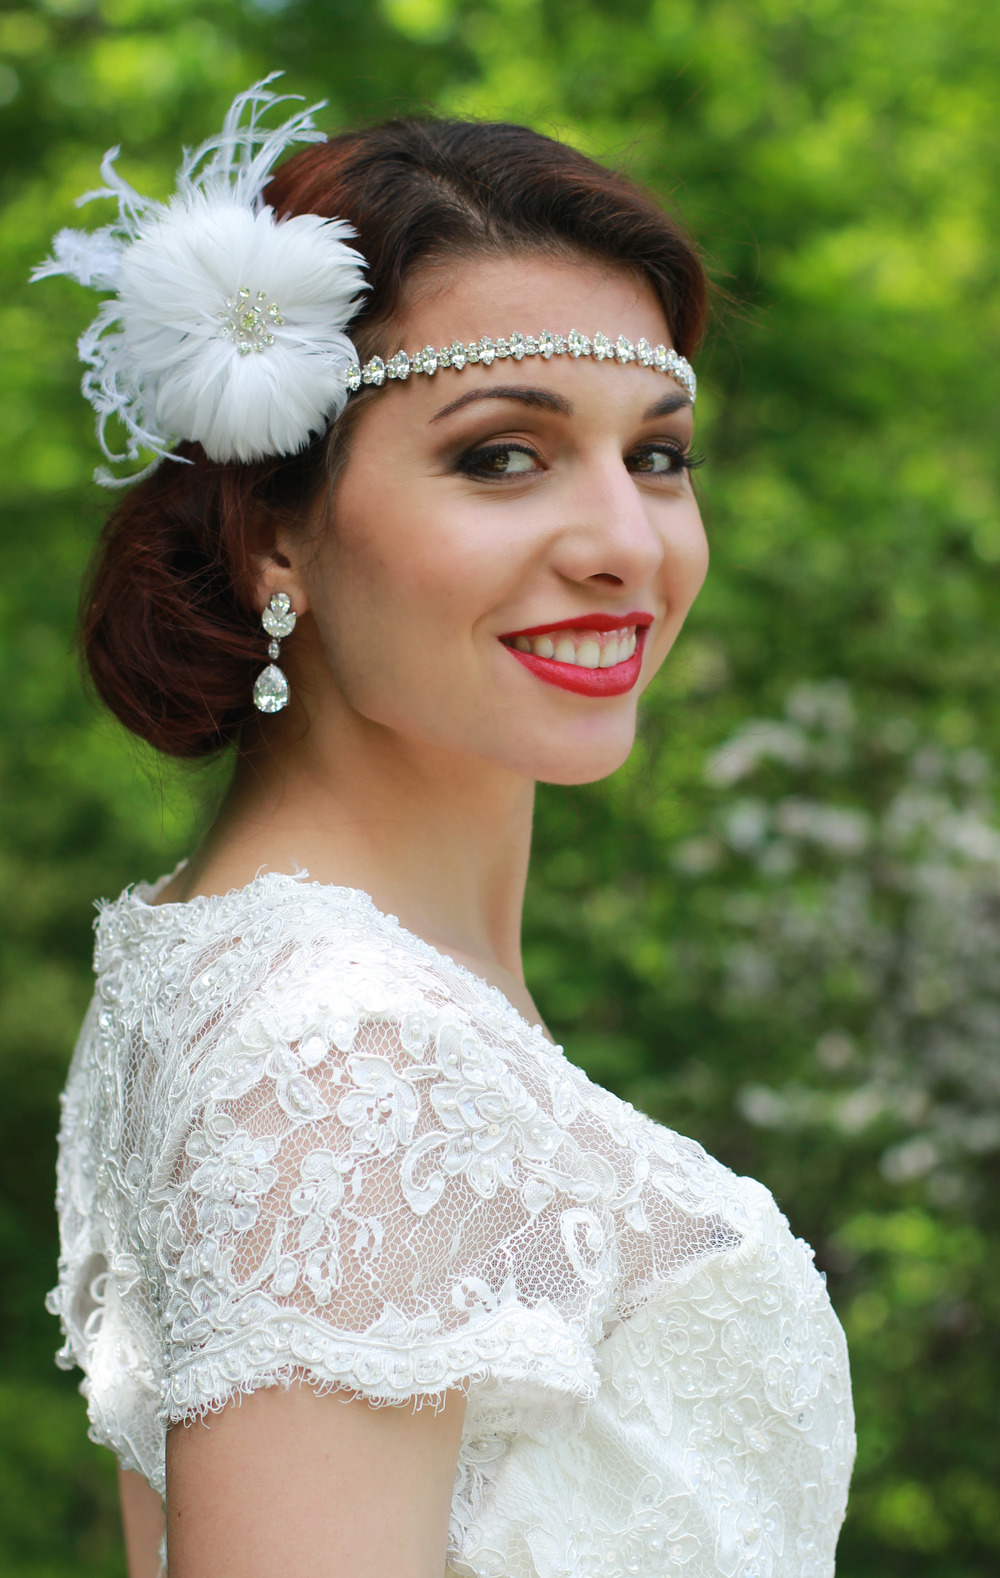 Vintage Glamour Wedding | Bride | Brookside Gardens - Jess Rudolph Photography: www.jessrudolph.com